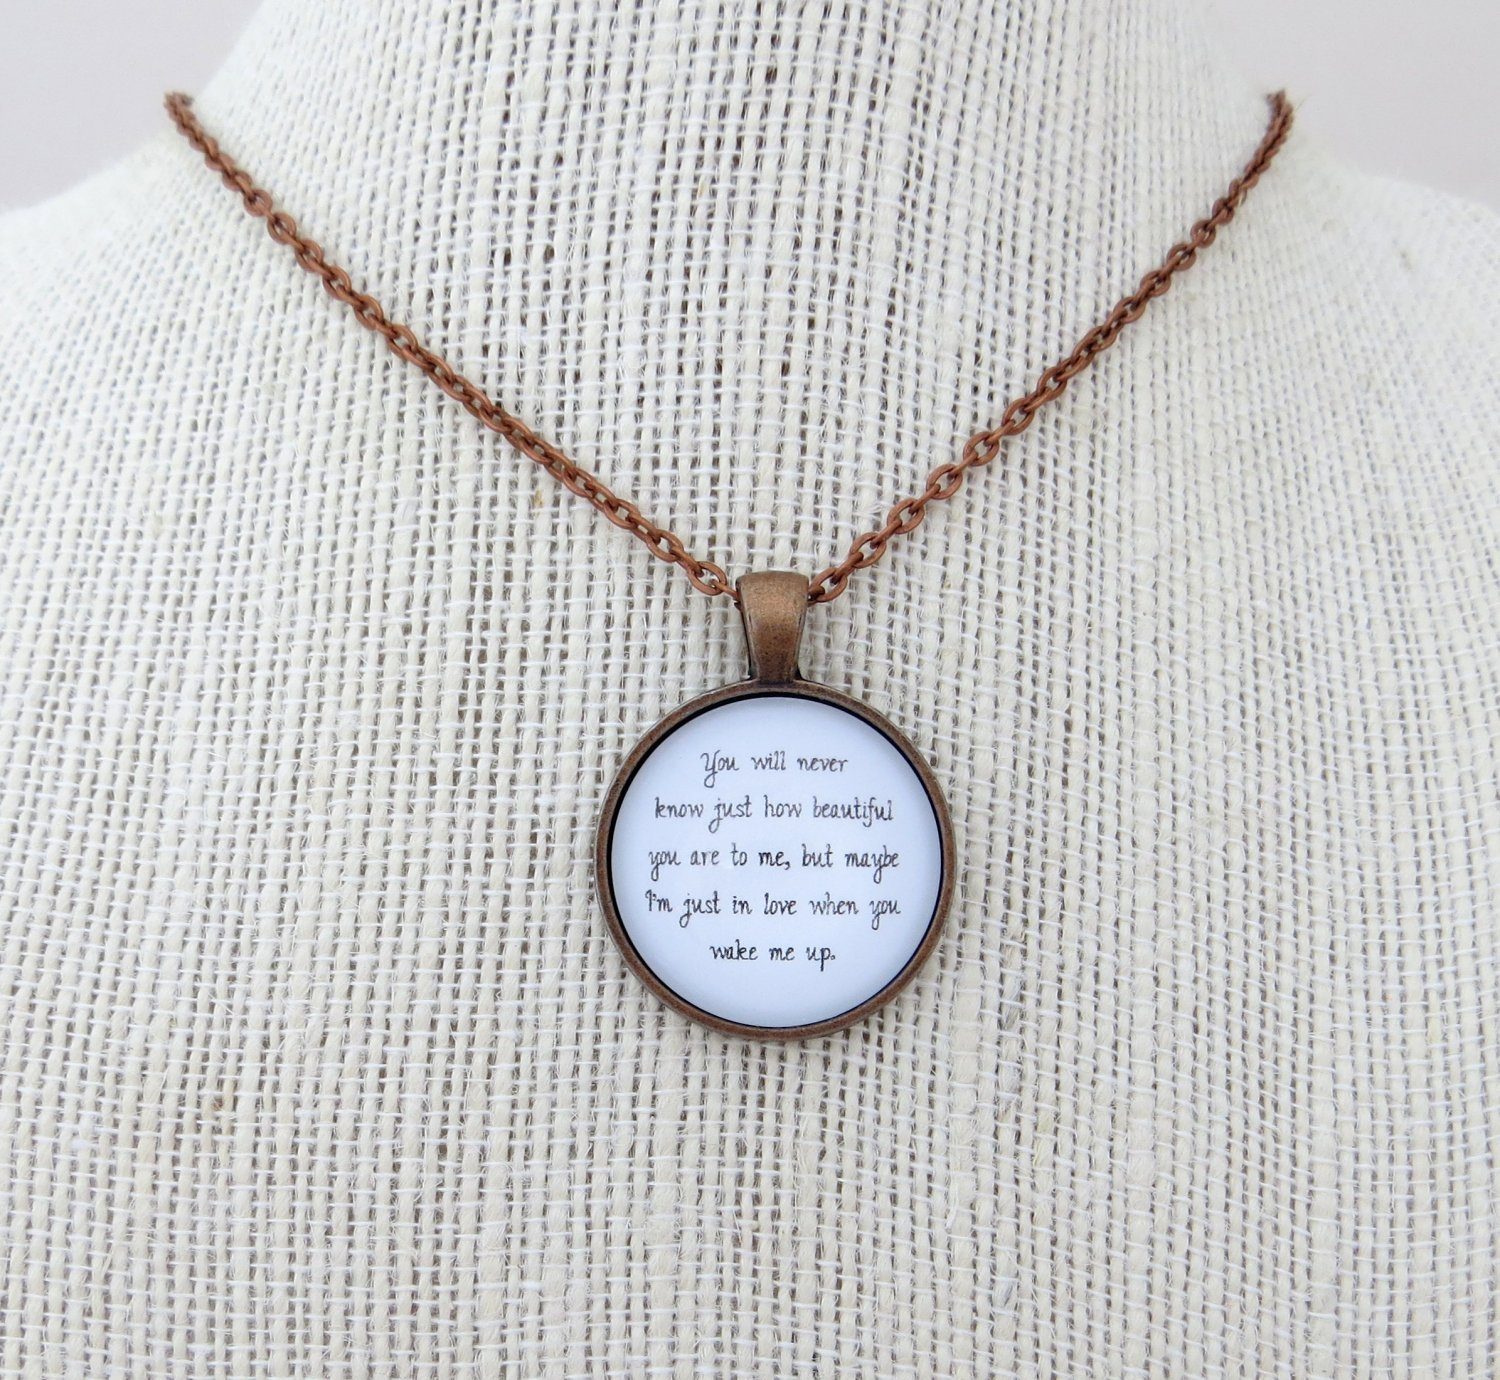 Ed Sheeran Wake Me Up Inspired Lyrical Quote Pendant Necklace (Copper, 18 inches)